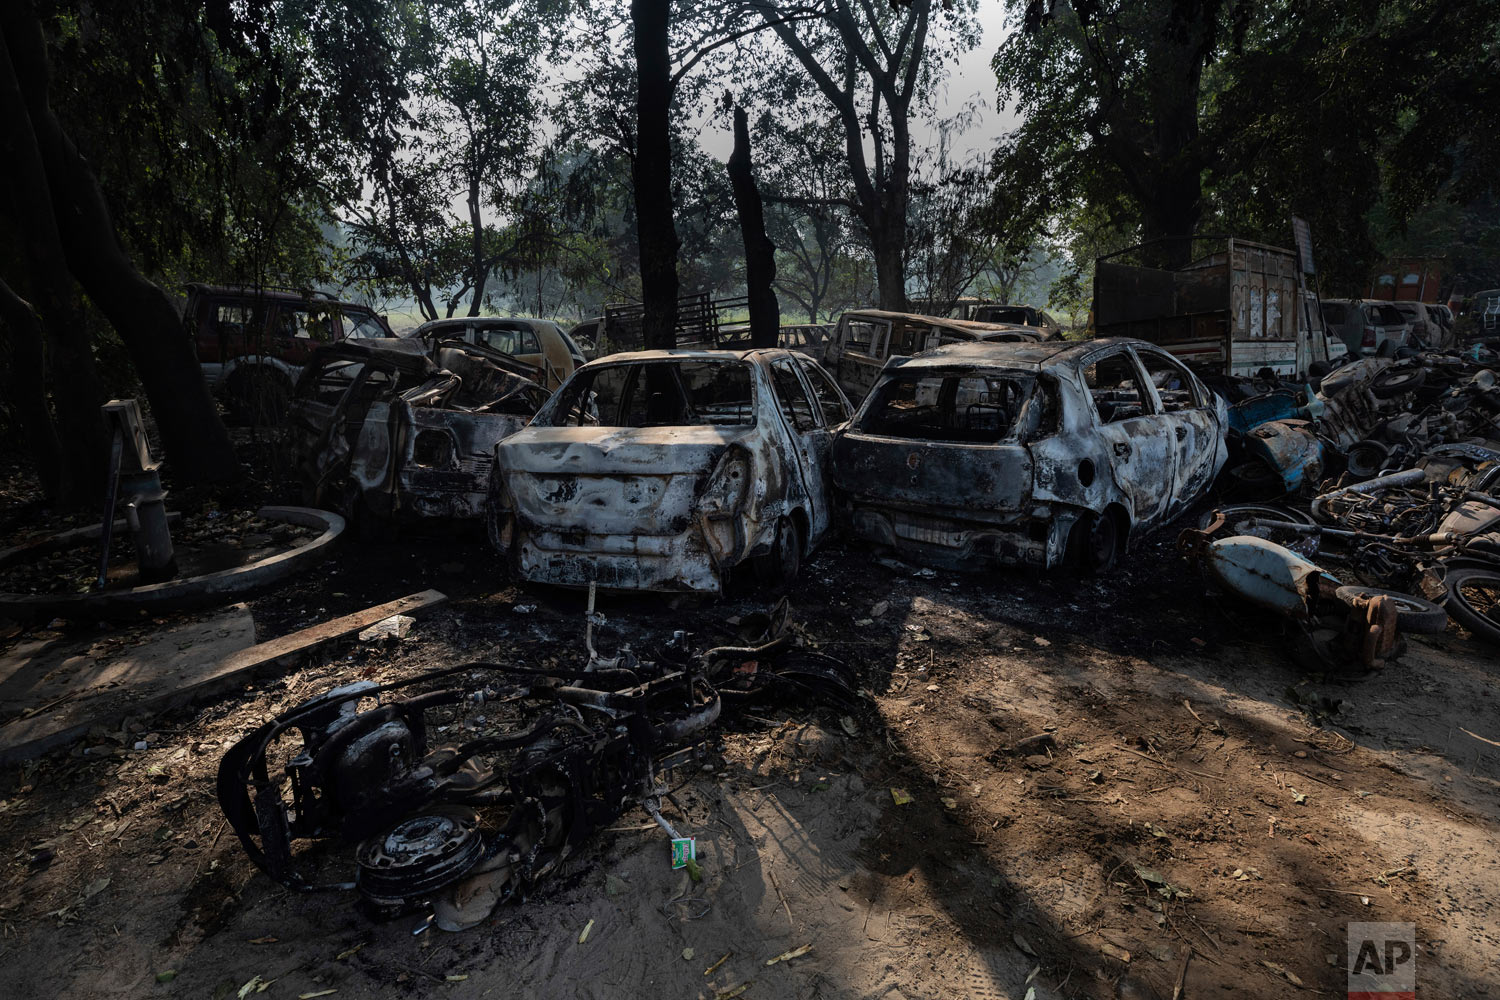 Vandalized cars and other vehicles sit in Chingarwathi, near Bulandshahr, in the northern Indian state of Uttar Pradesh, Dec. 4, 2018. (AP Photo/Bernat Armangue)